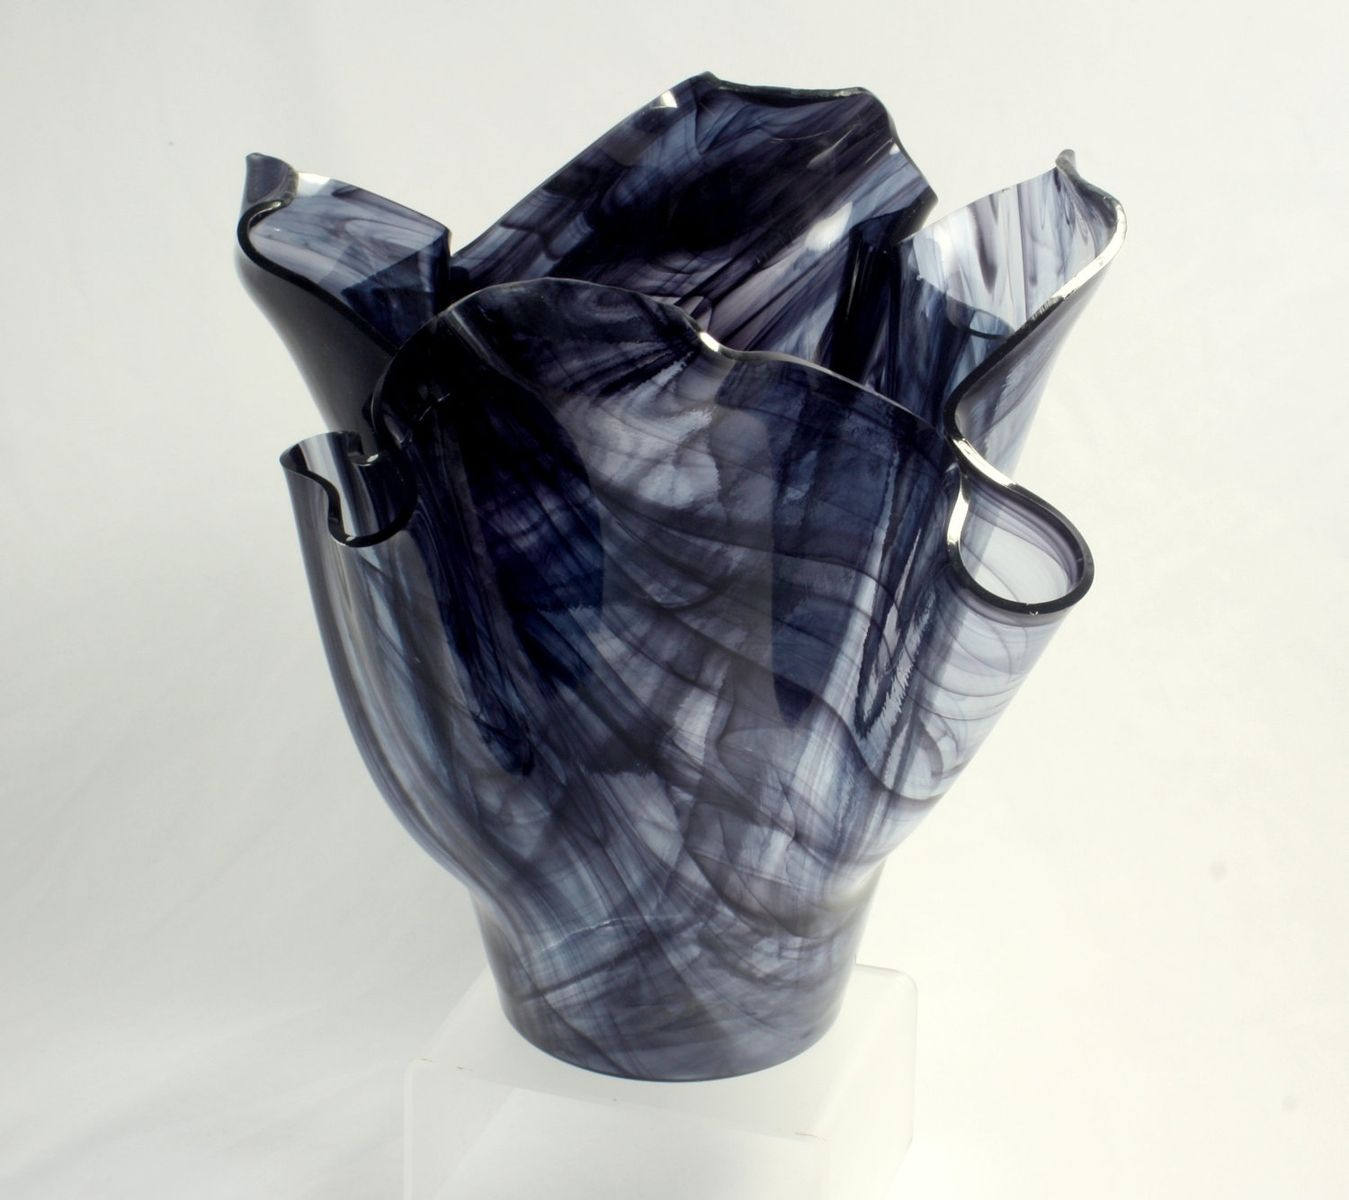 Buy a custom wispy black fused glass vase made to order from jm buy a custom wispy black fused glass vase made to order from jm fusions llc custommade reviewsmspy